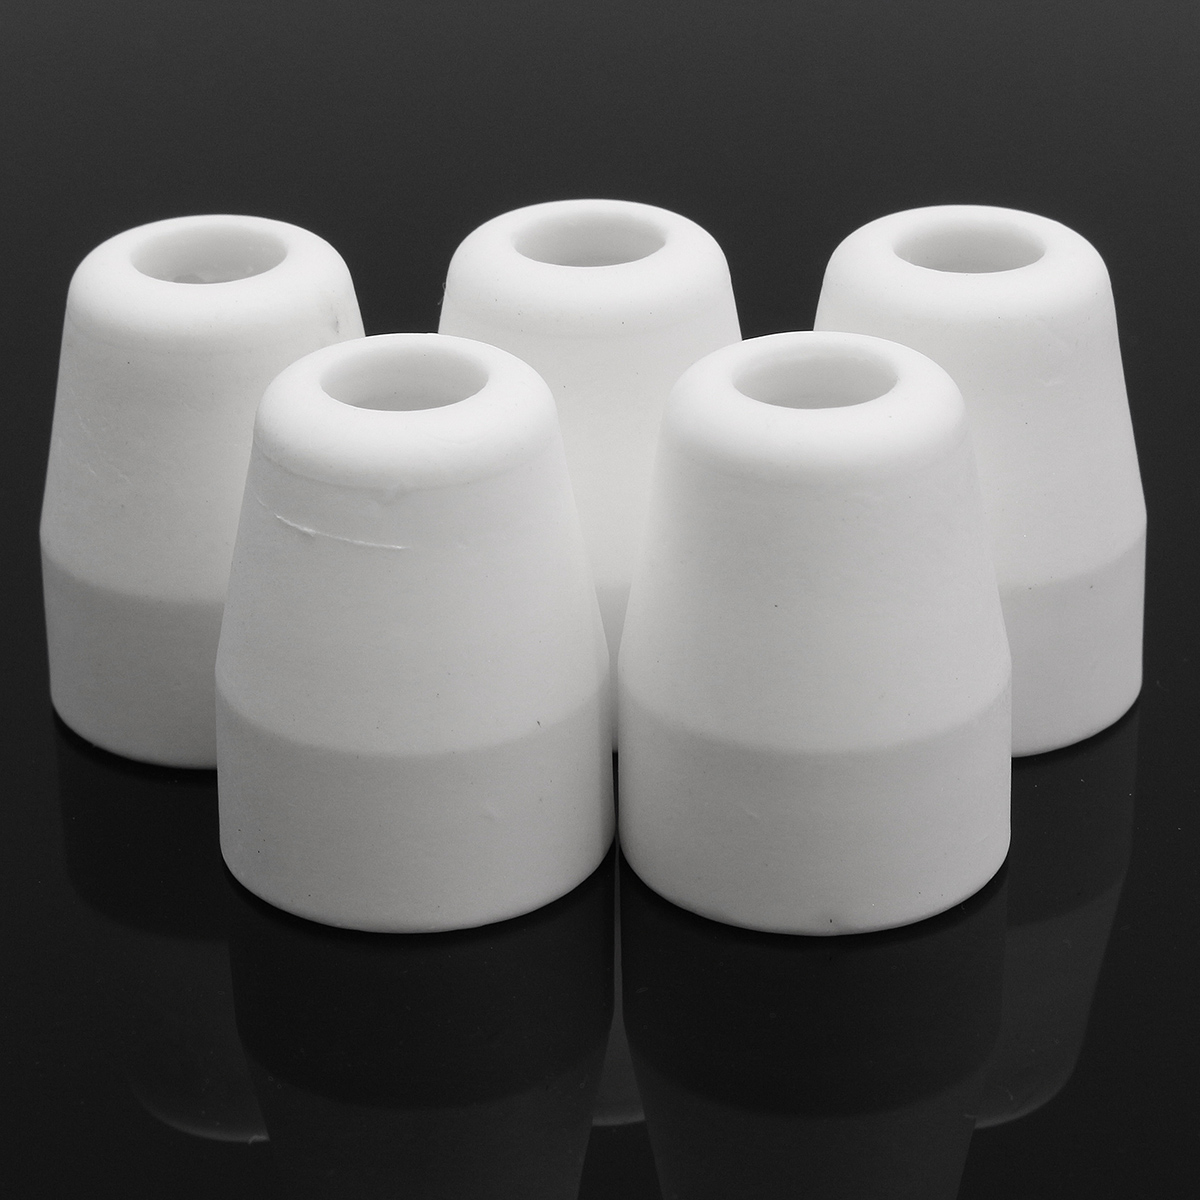 5Pcs Plasma Cutter Consumable Shield Cups for LG-40 PT-